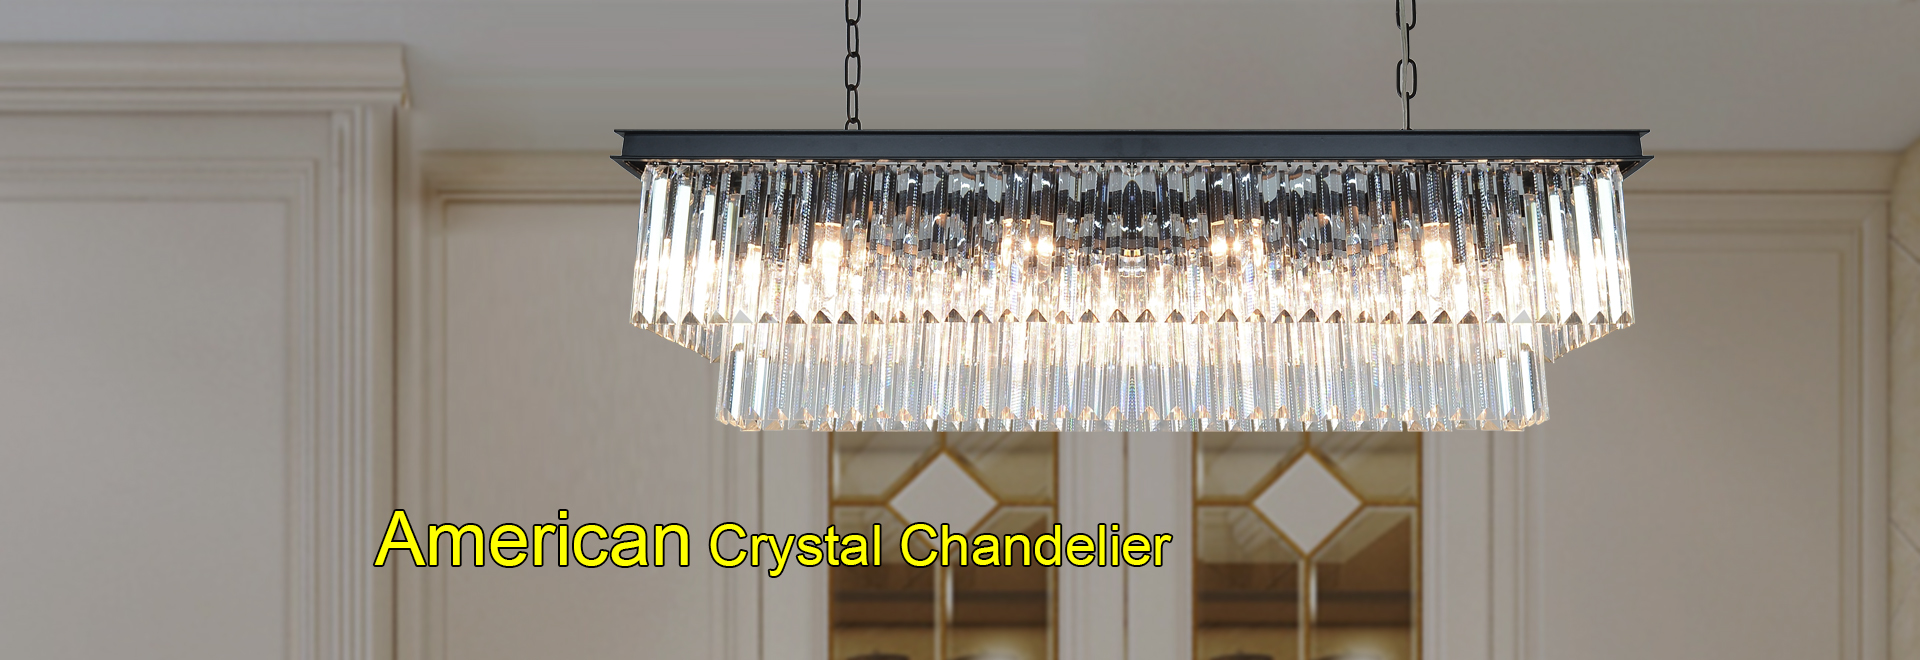 Meerosee Recommended Luxury Series Inventory 一 Round Shape Crystal Chandelier Lighting